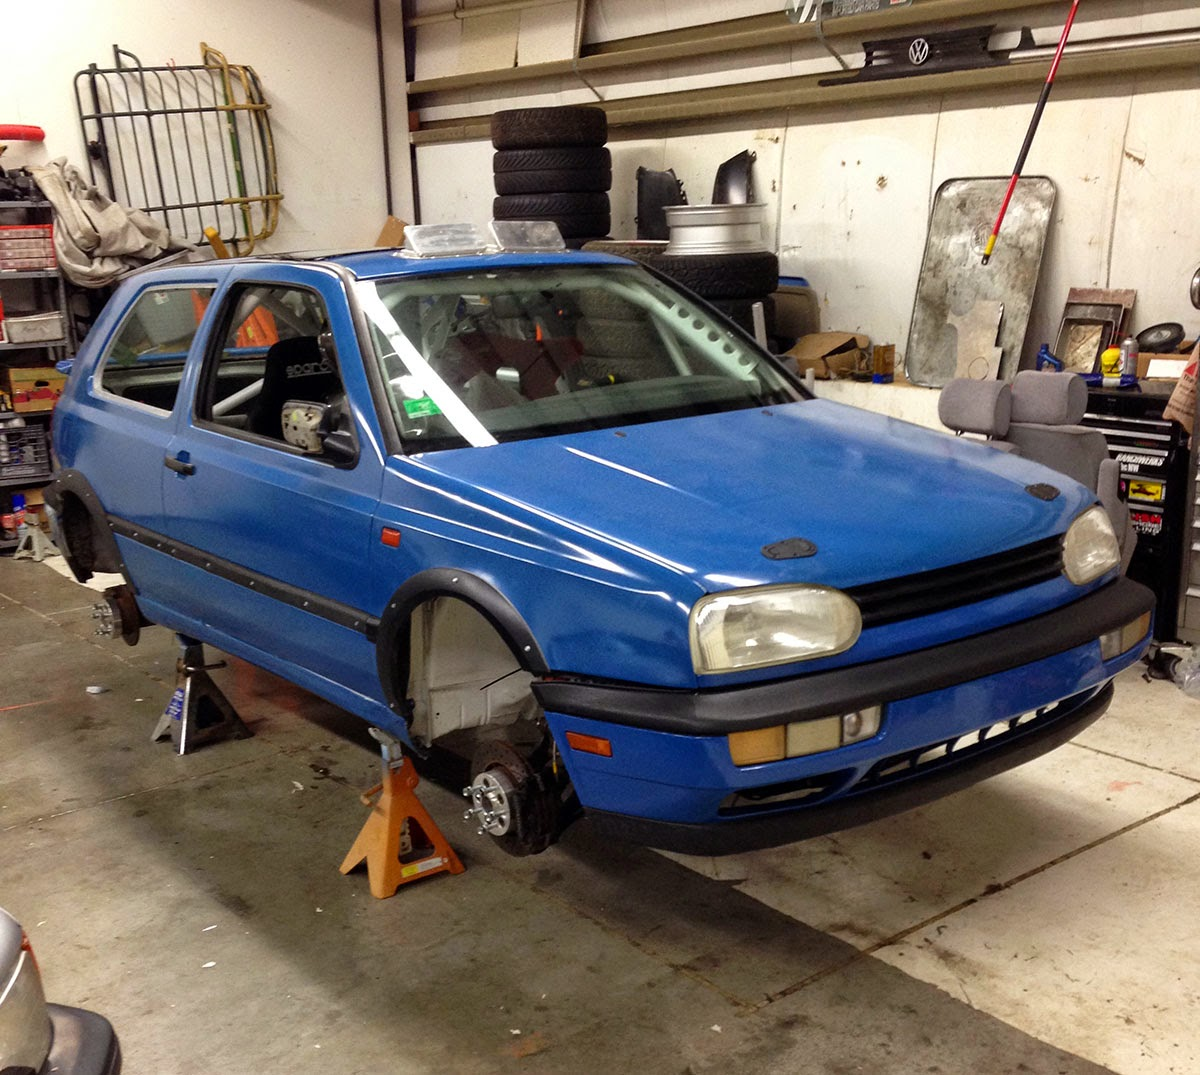 Building the diesel-powered VW rally car